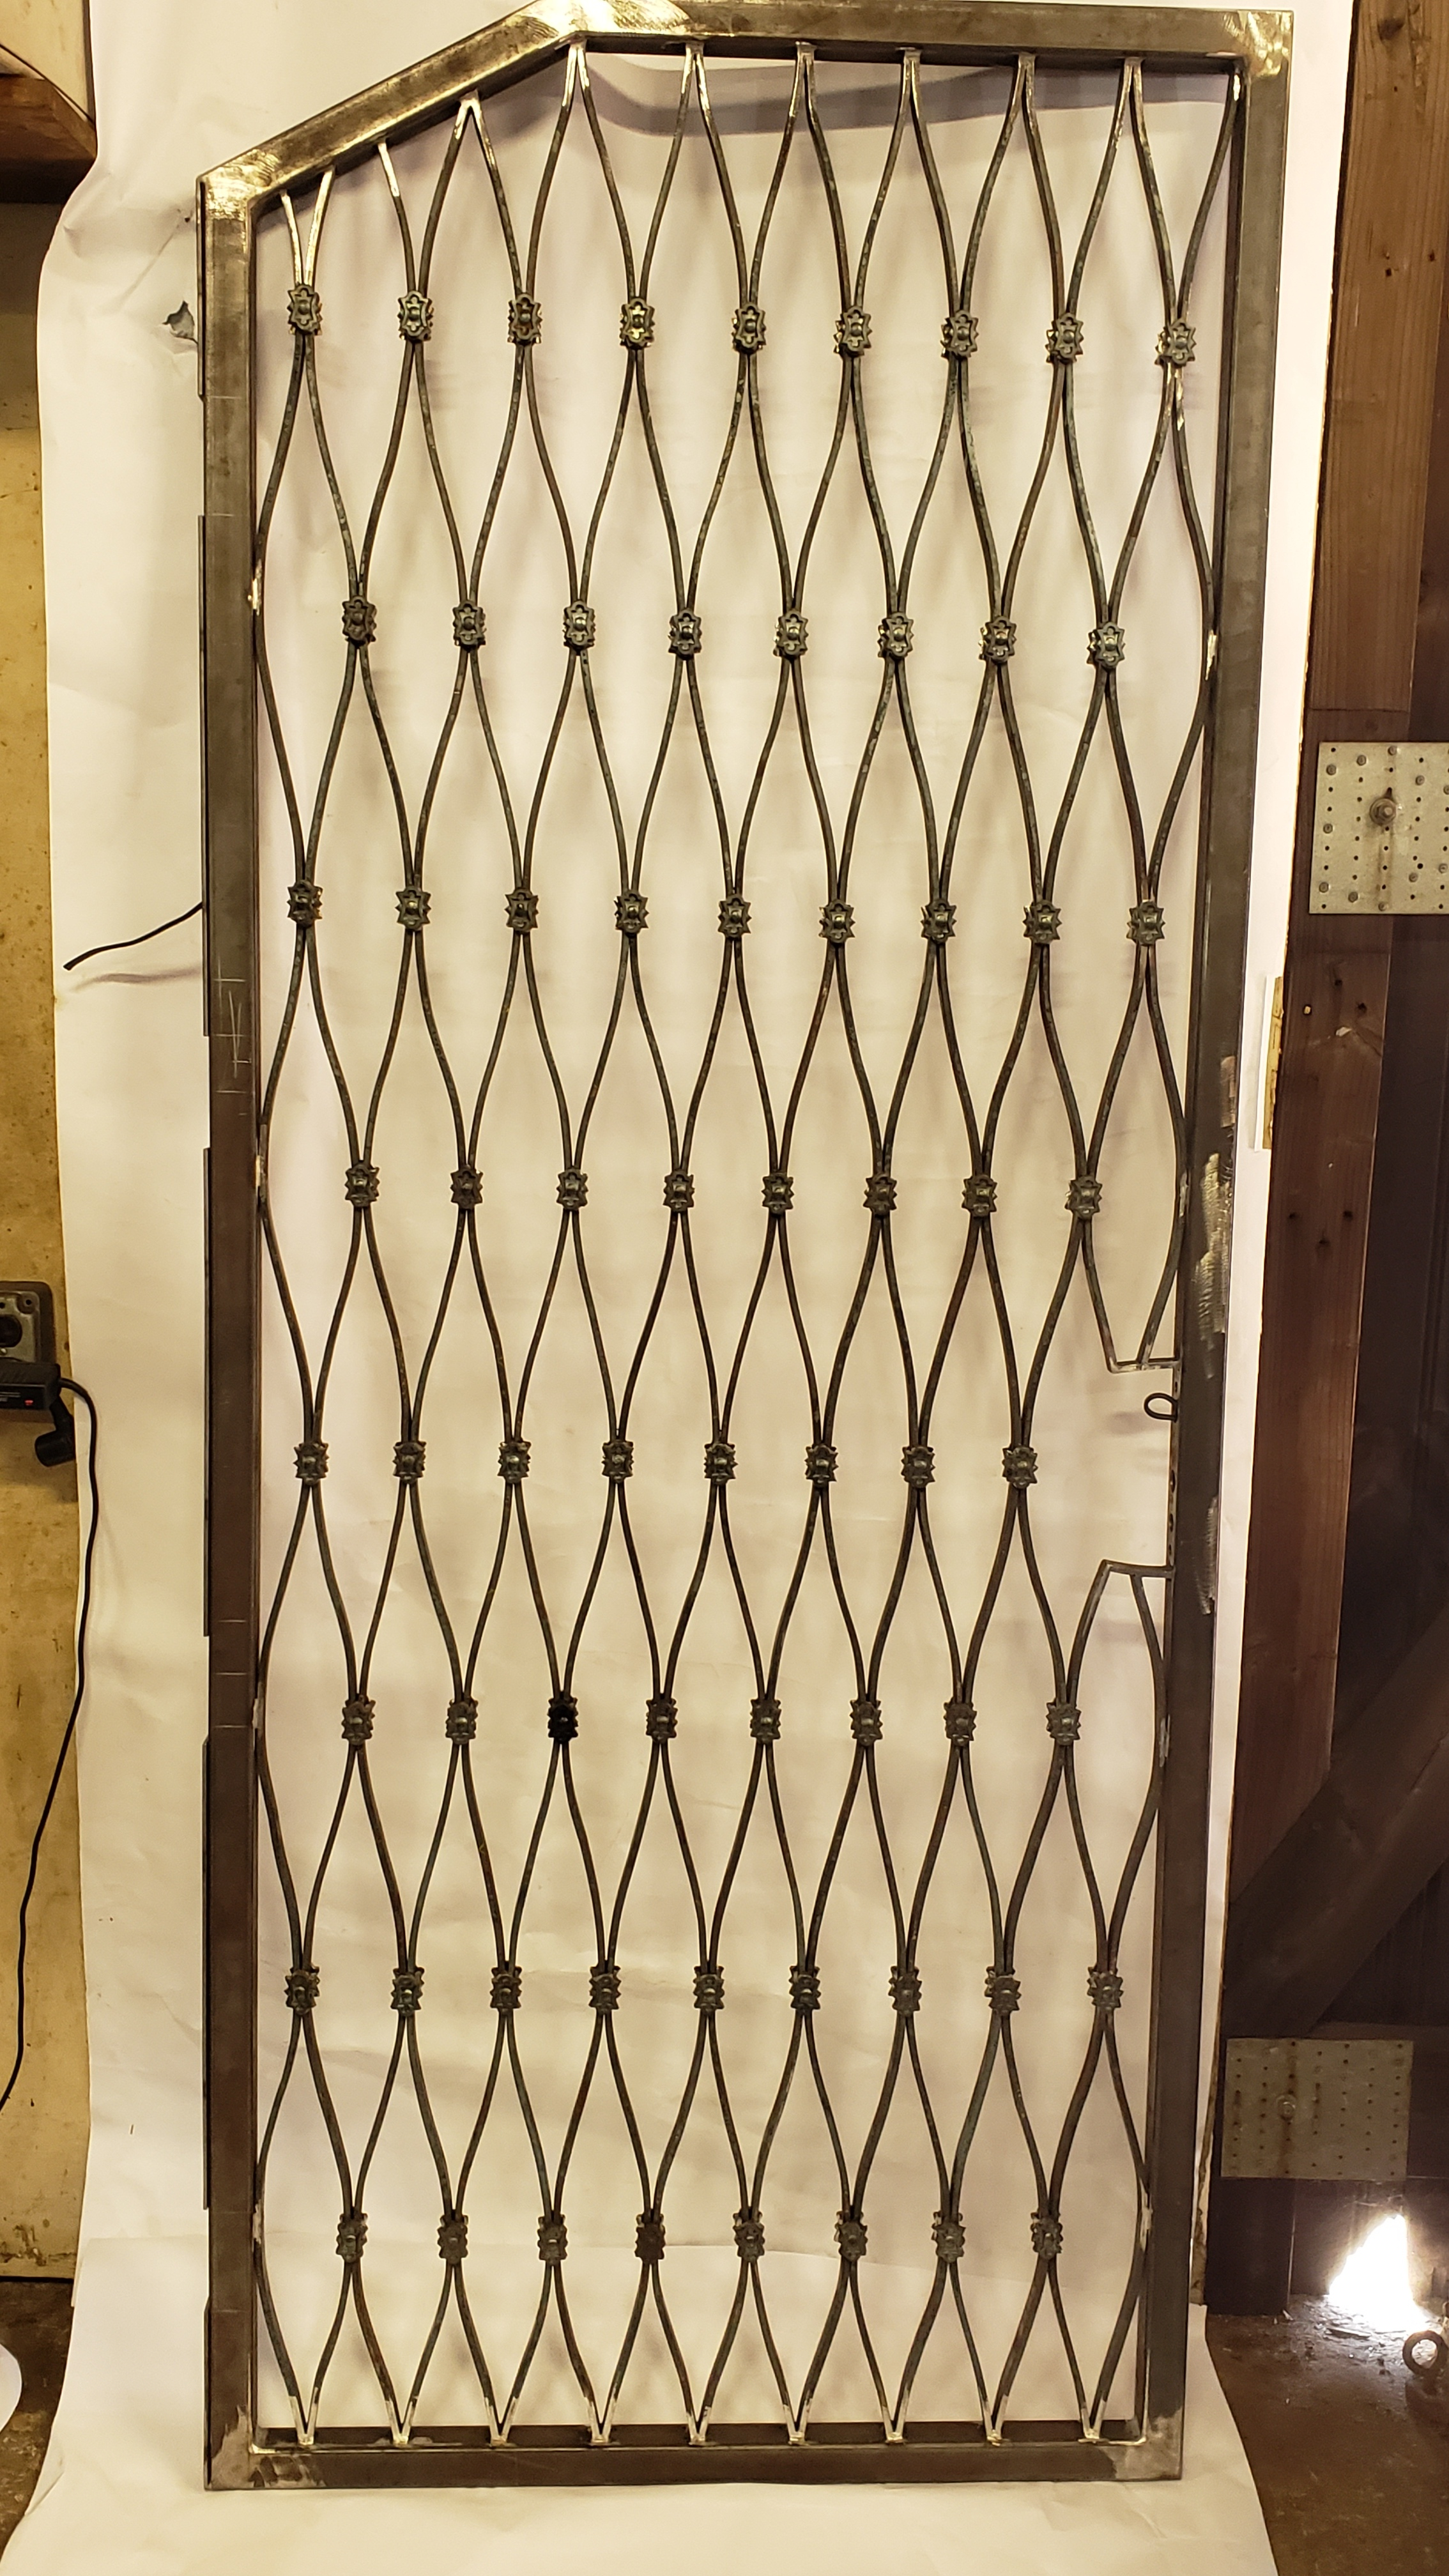 New Gate to match Existing Window Grille 02.jpg